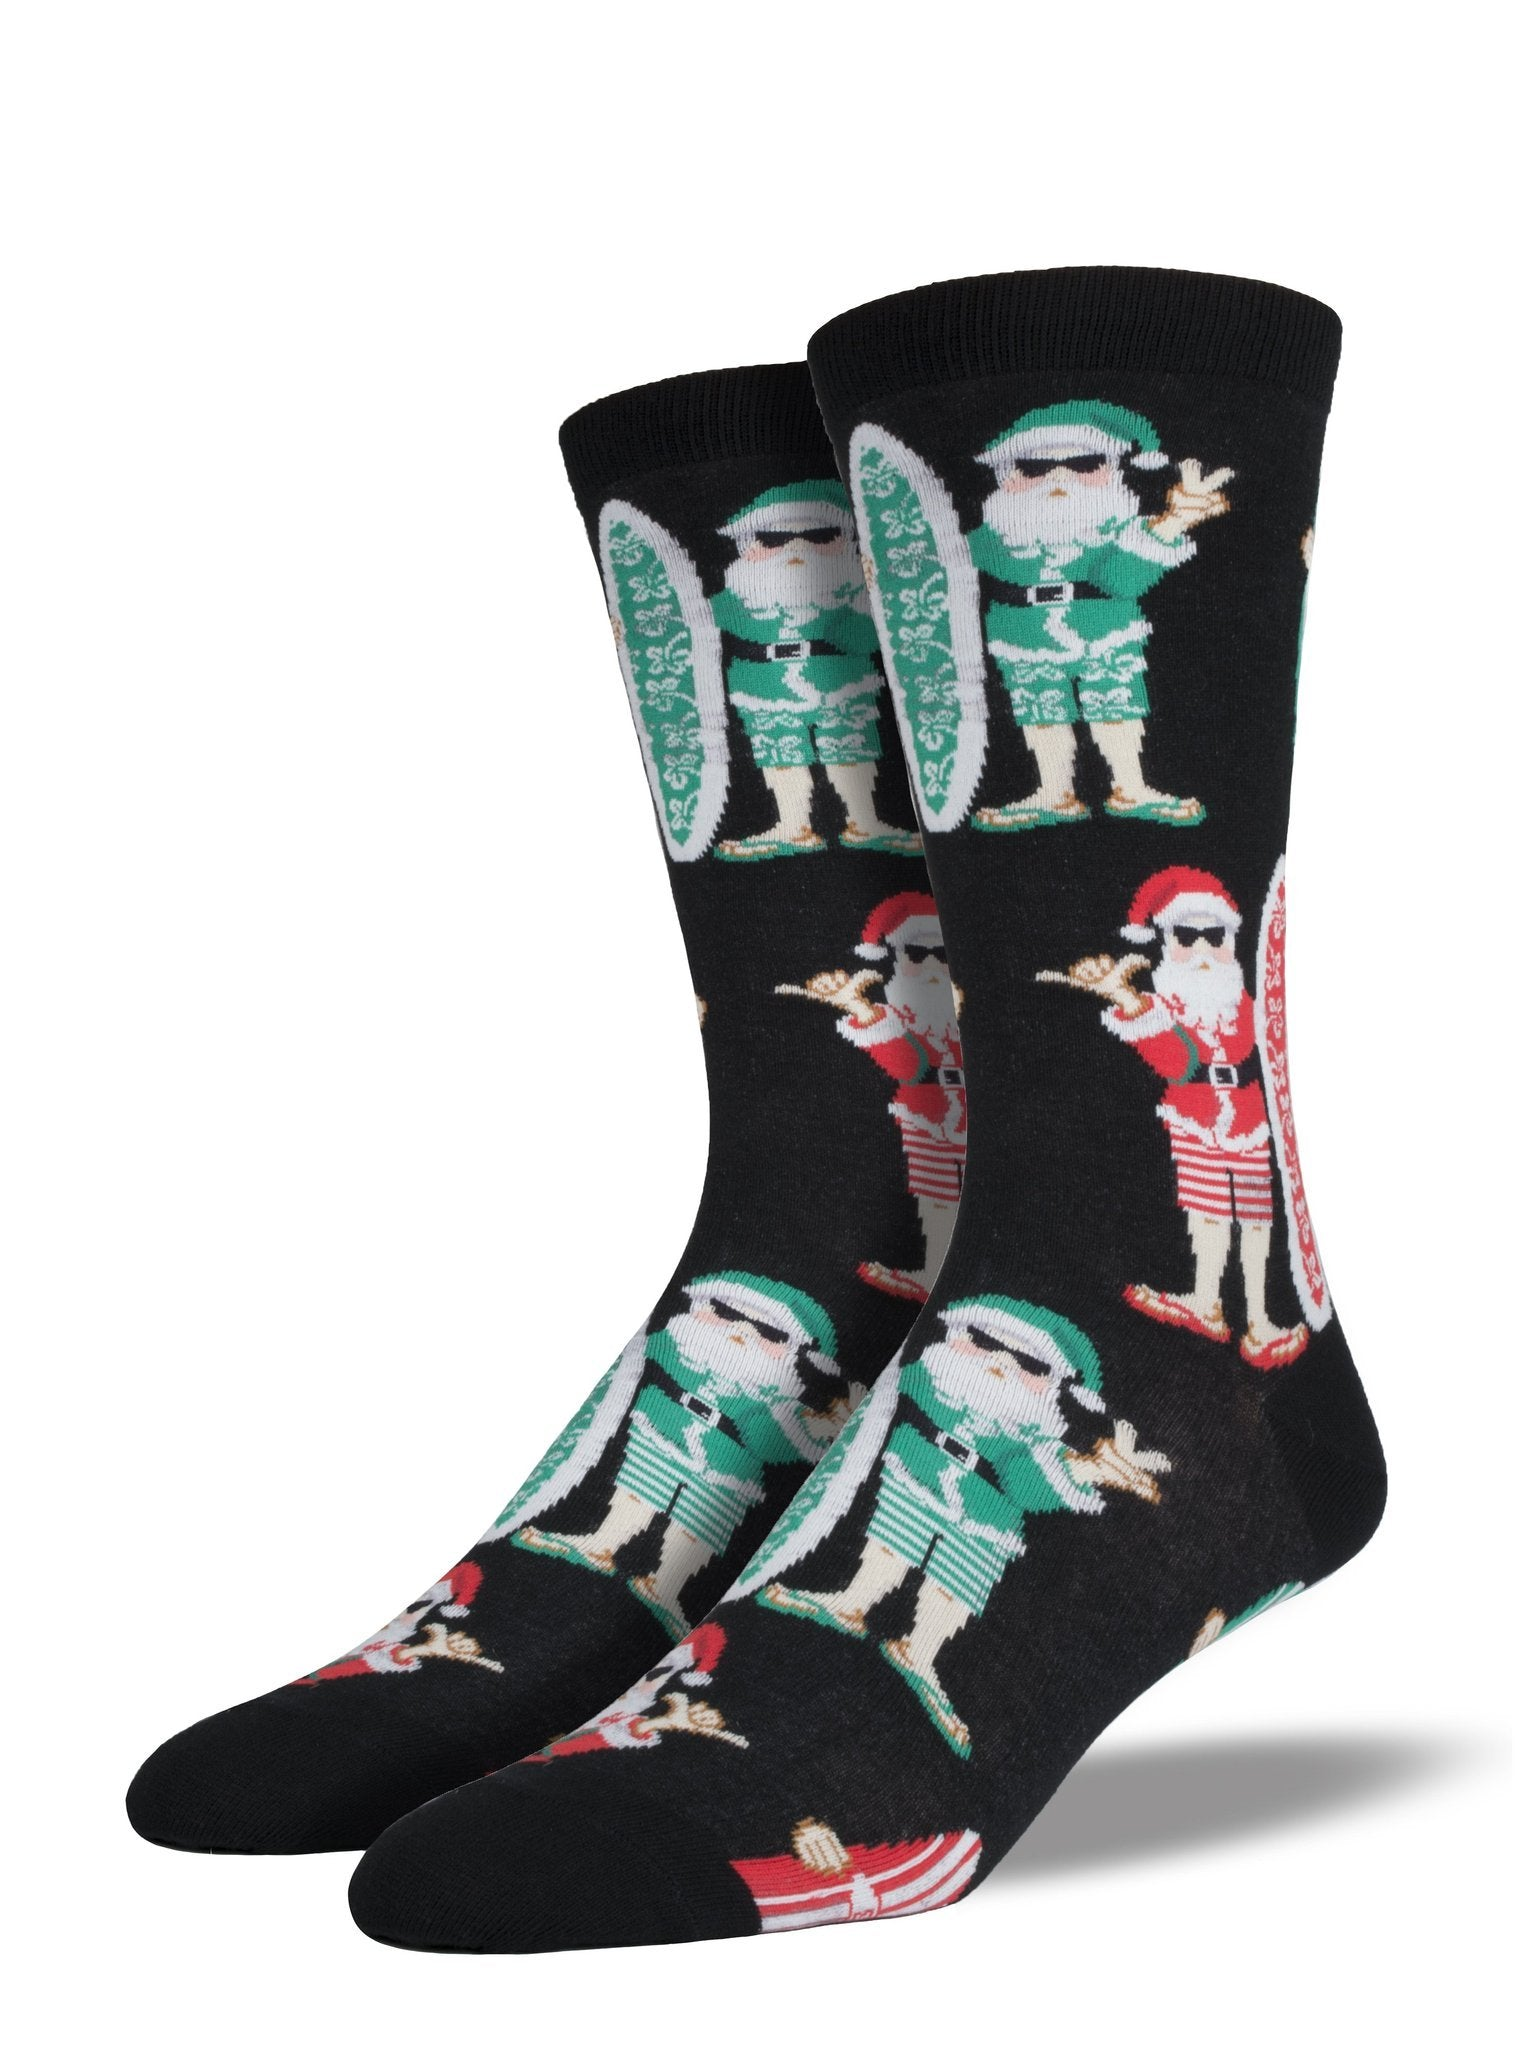 Men's Surf Santa Socks